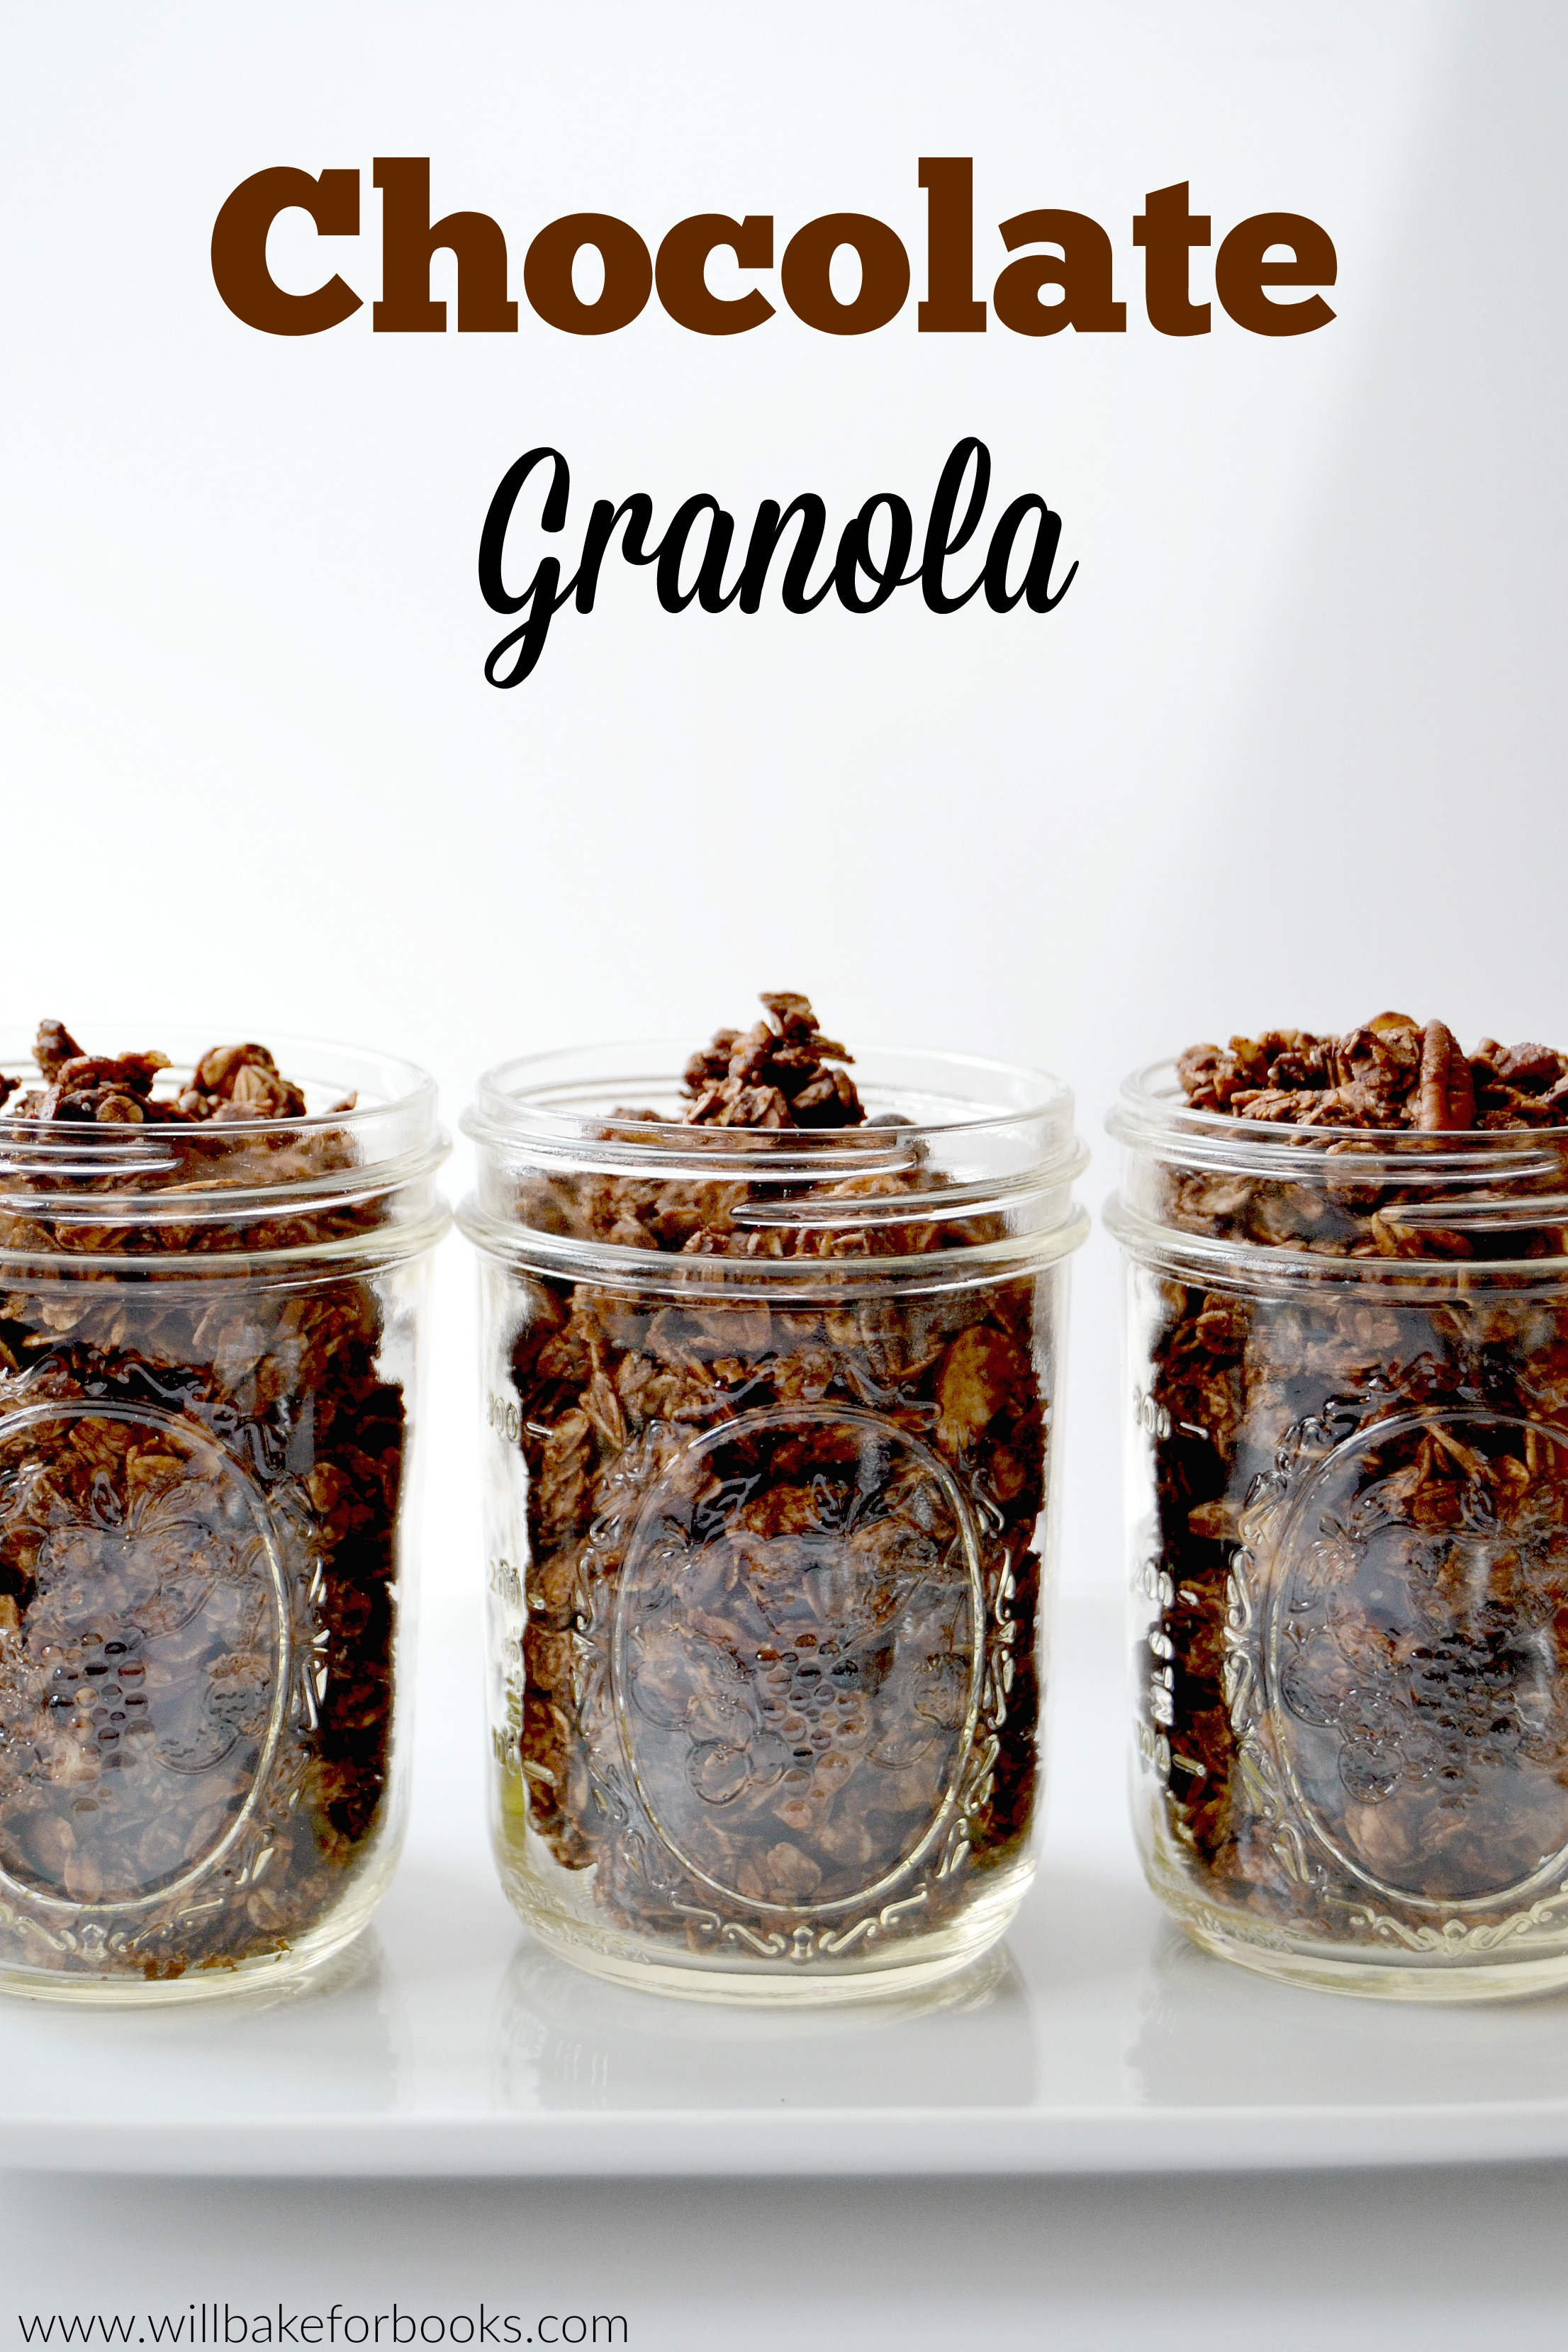 Chocolate Granola | Recipe on willbakeforbooks.com!